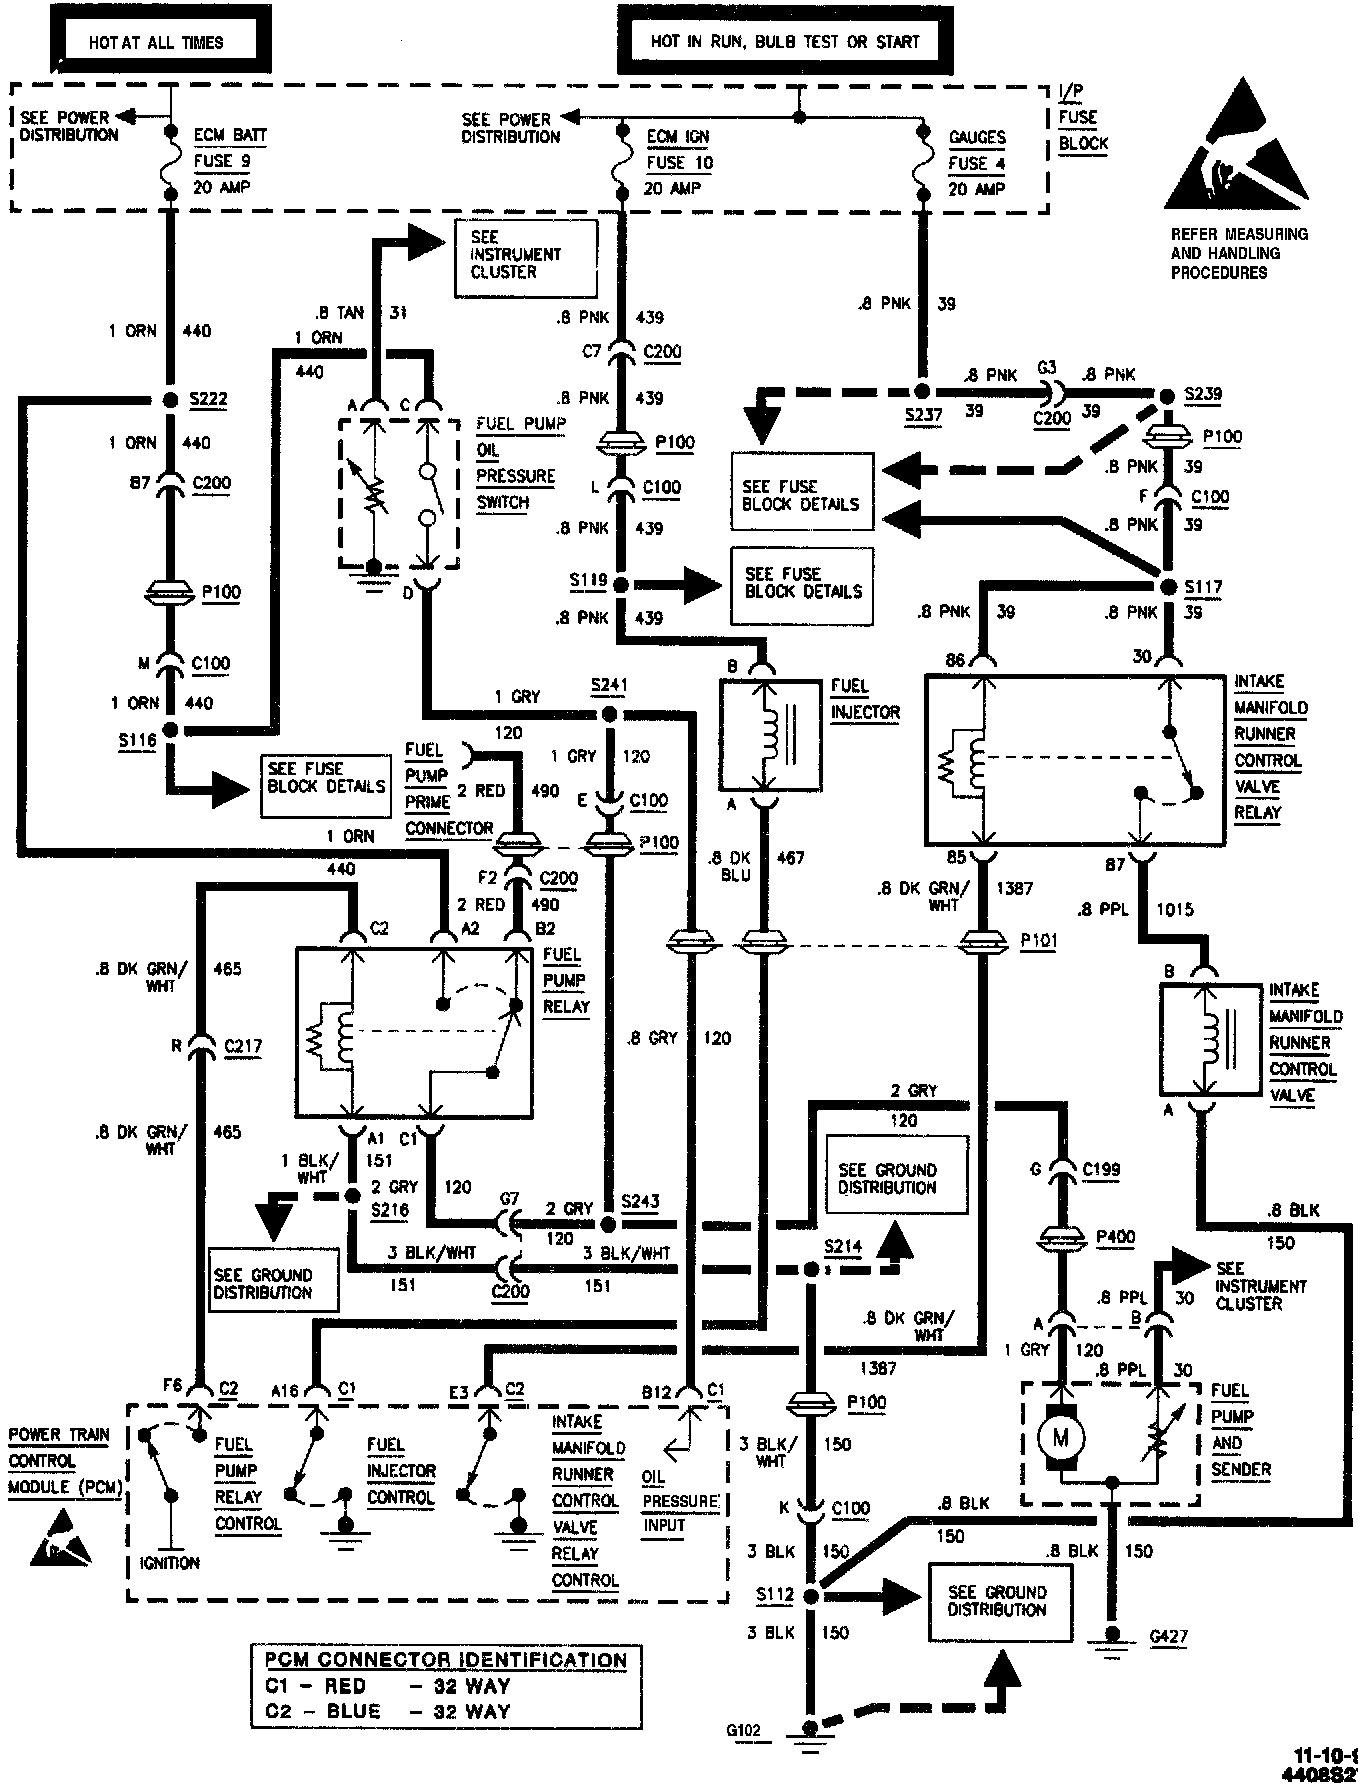 87 S10 Wiring Diagram | Wiring Diagram  S Wiring Schematic on s10 performance, s10 wiring guide, s10 ignition switch, s10 2.2 turbo, s10 v8 wiring, s10 pickup, s10 engine, s10 parts list, s10 suspension upgrades, s10 alternator wiring, s10 girls, s10 exhaust system, s10 z06 wheels, s10 starter, s10 radio, s10 hood, s10 kit car, s10 fuel pump, s10 dash,